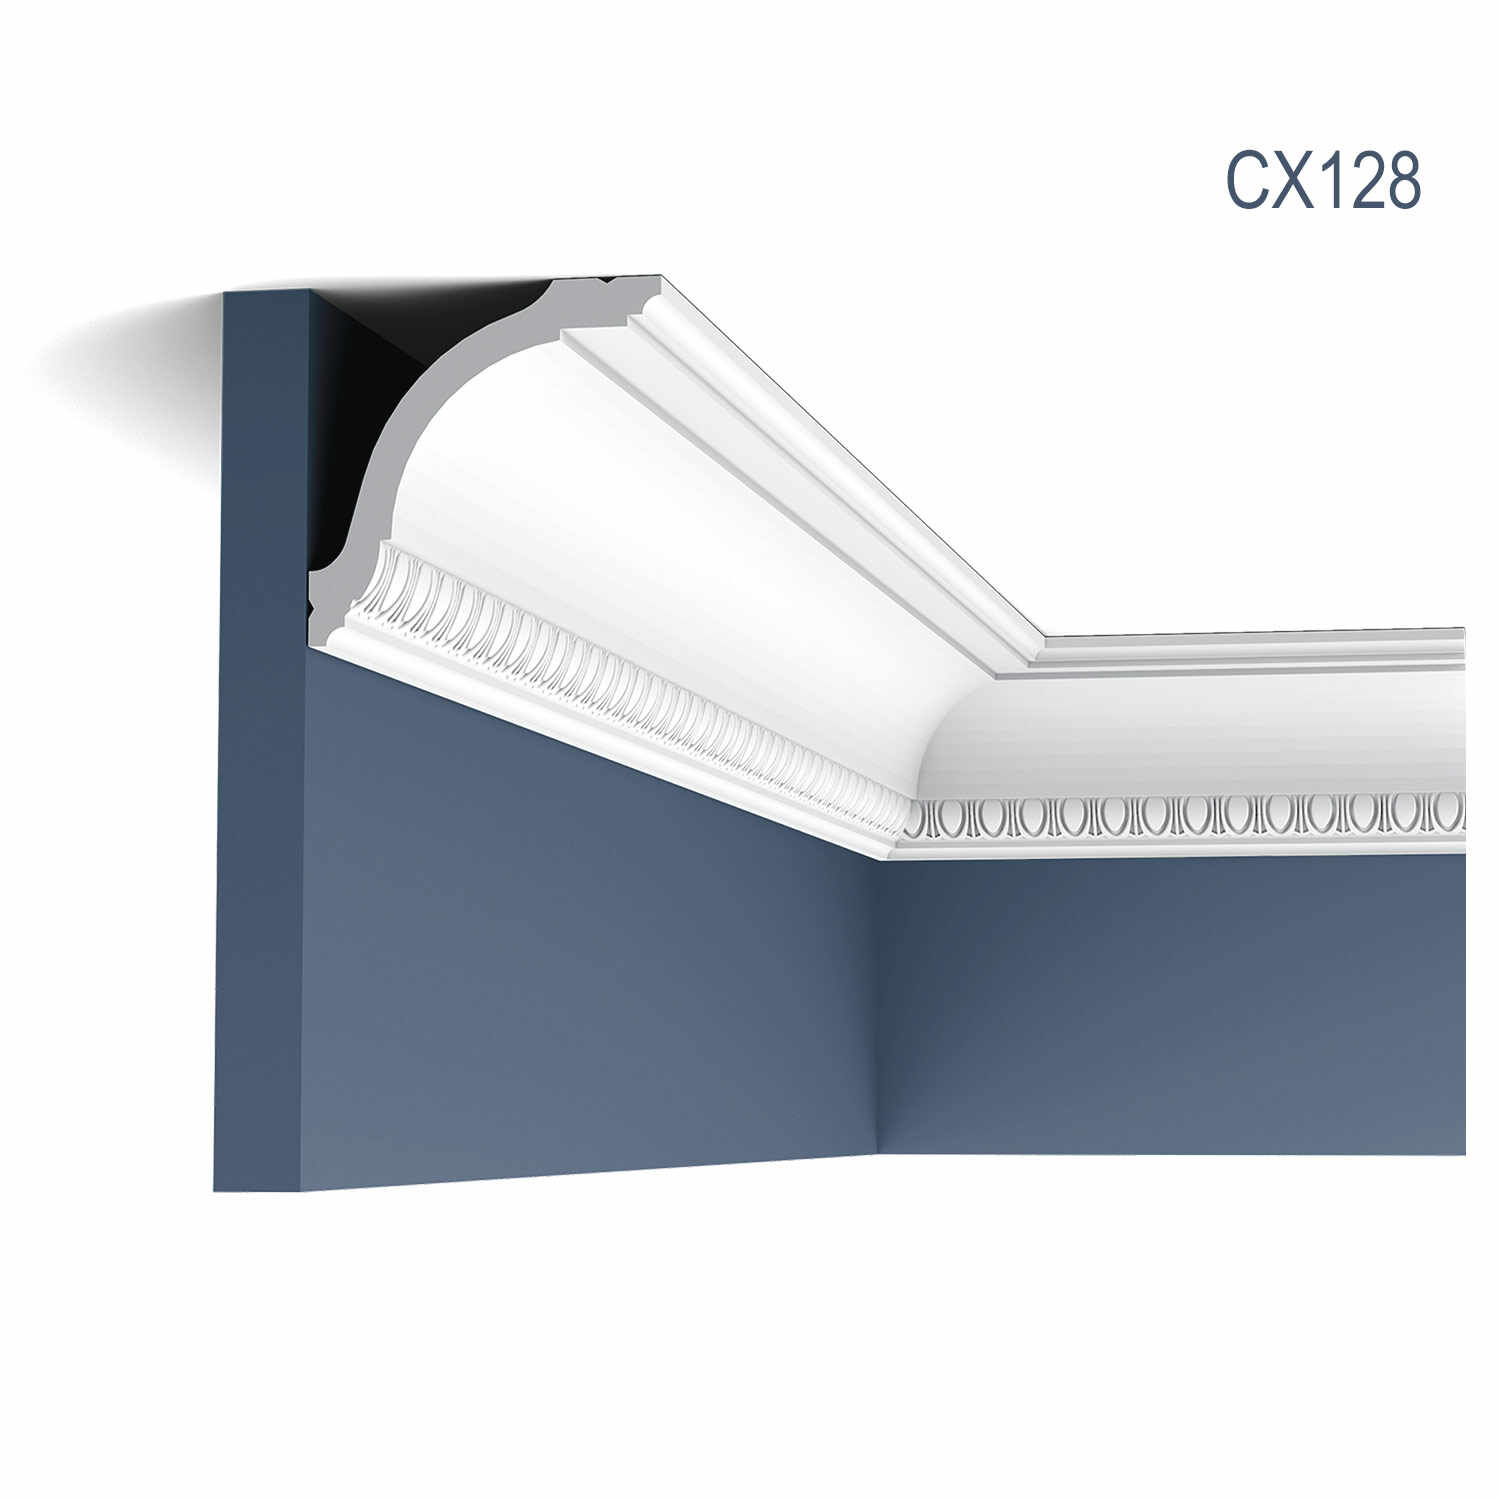 Cornisa Axxent CX128, Dimensiuni: 200 X 9.4 X 9.4 cm, Orac Decor